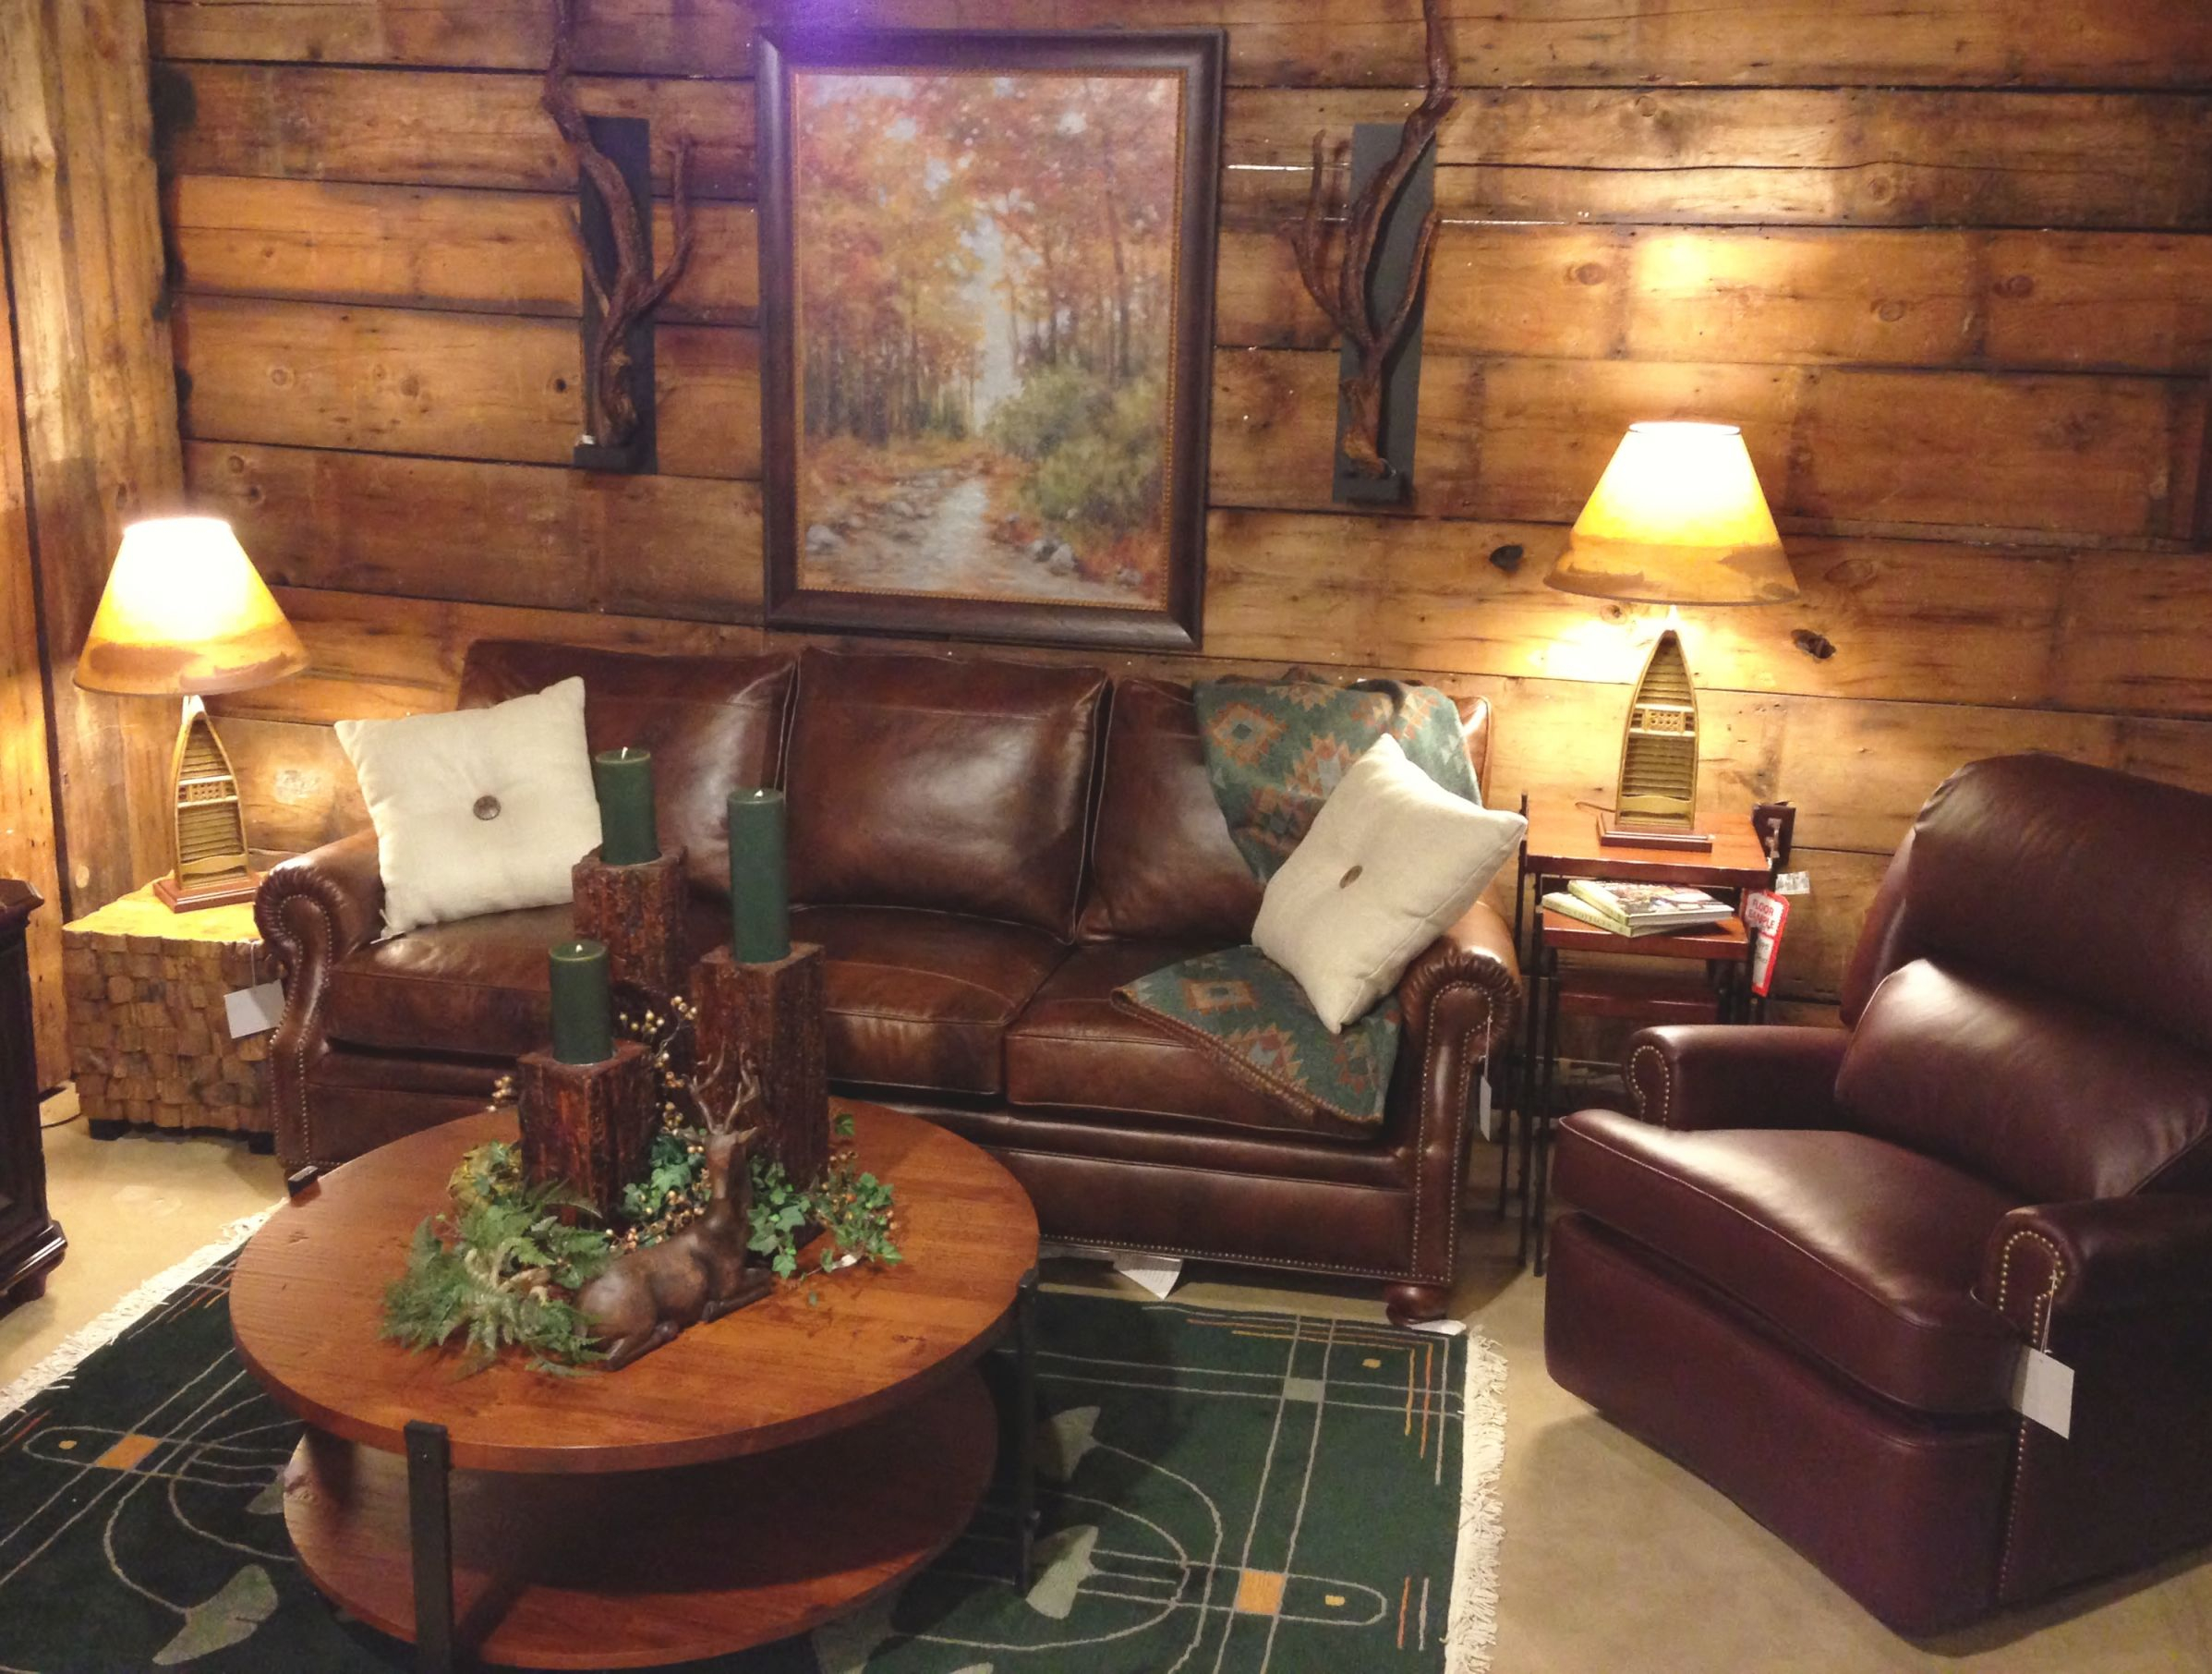 Rustic Living Room - All About Rustic Living Room - Living with regard to Inspirational Rustic Living Room Furniture